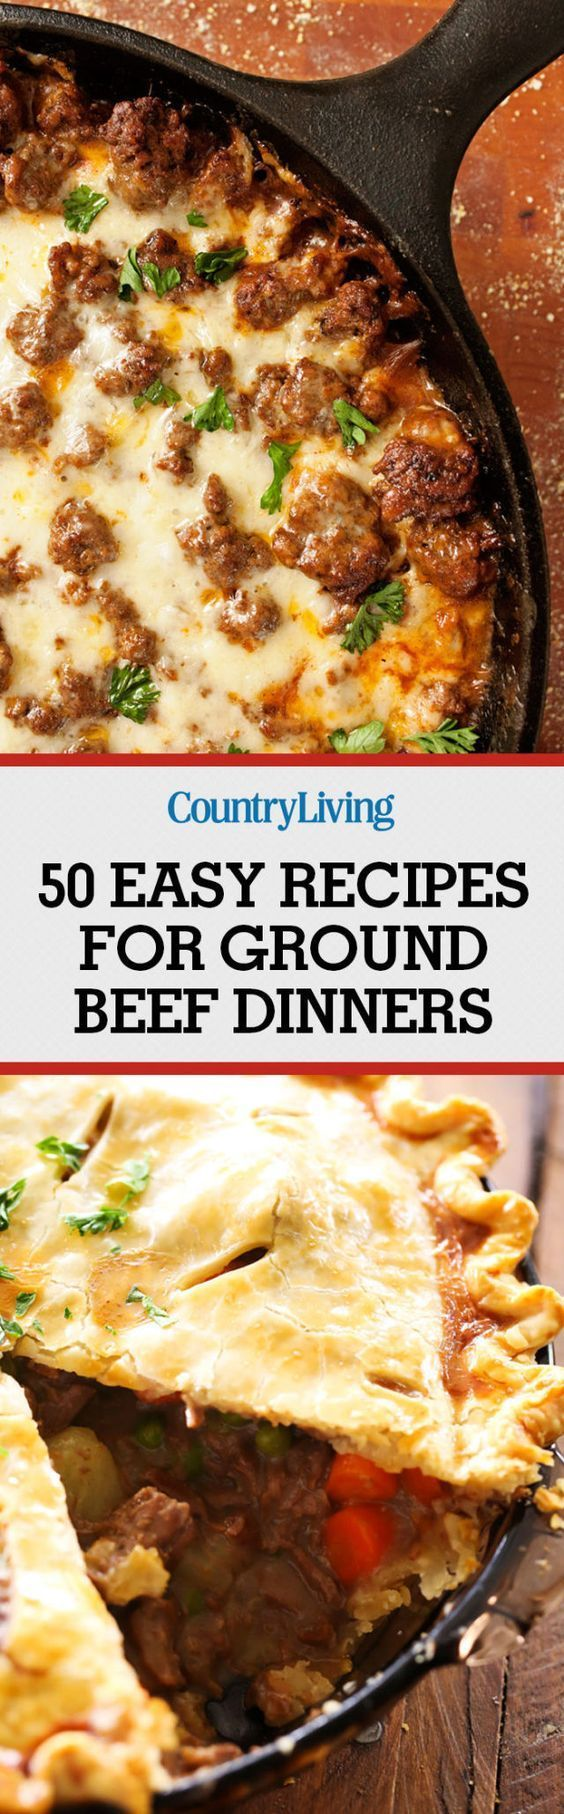 70 Easy Ground Beef Recipes That Ll Make Weeknight Meals A Breeze Dinner With Ground Beef Beef Dinner Beef Recipes For Dinner